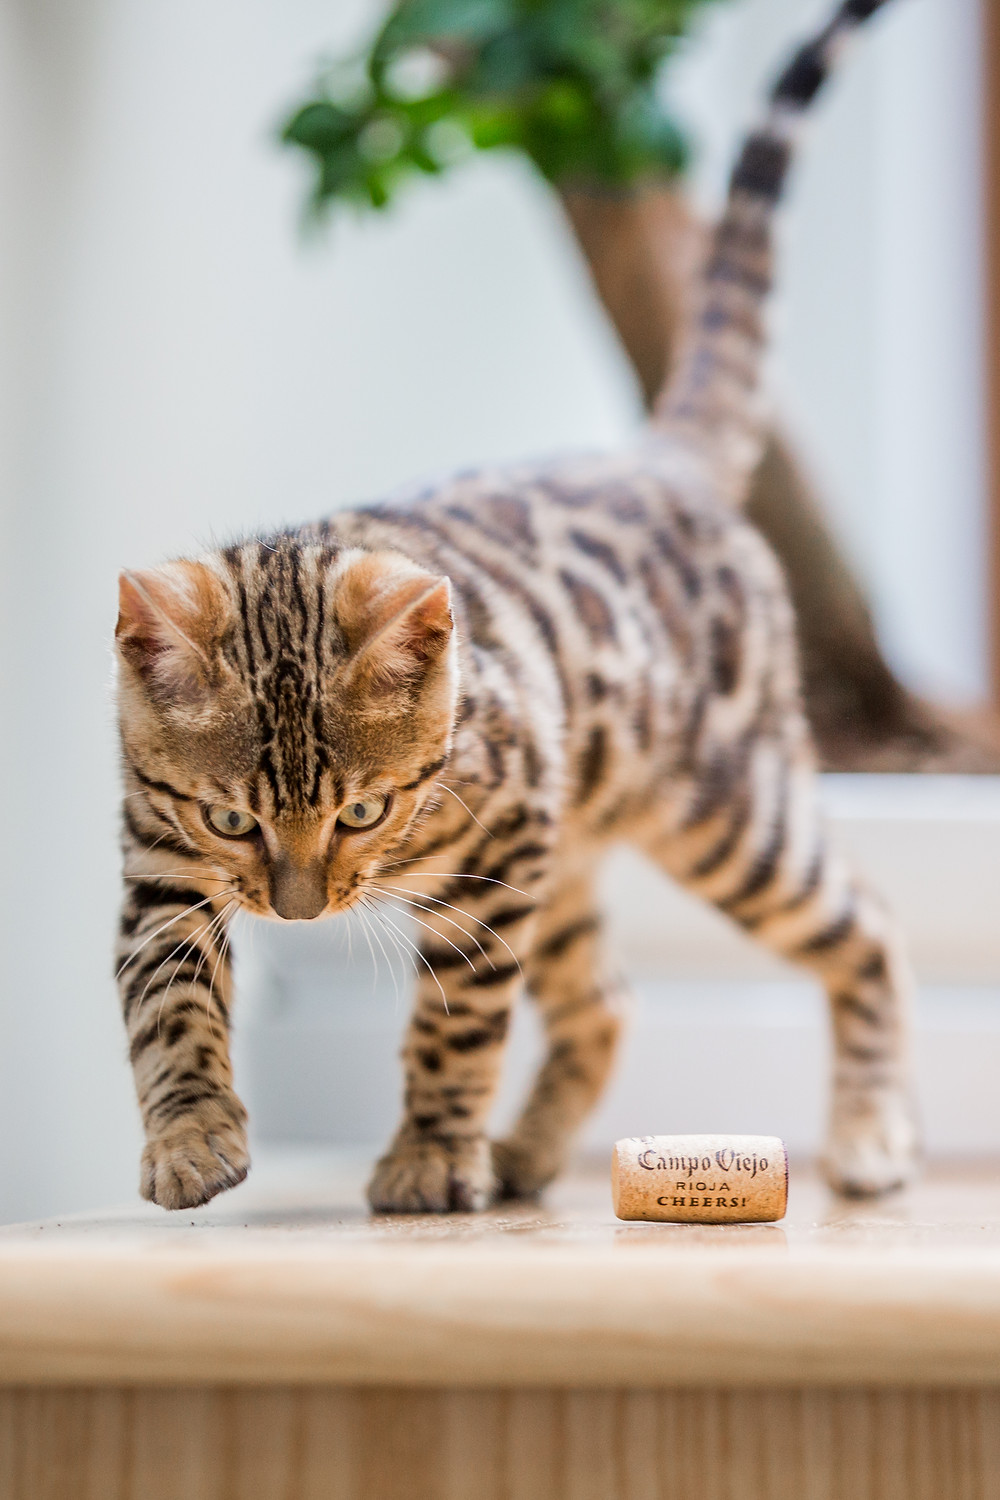 Cat photography in London. Bagheera the Bengal Kitten playing with a cork